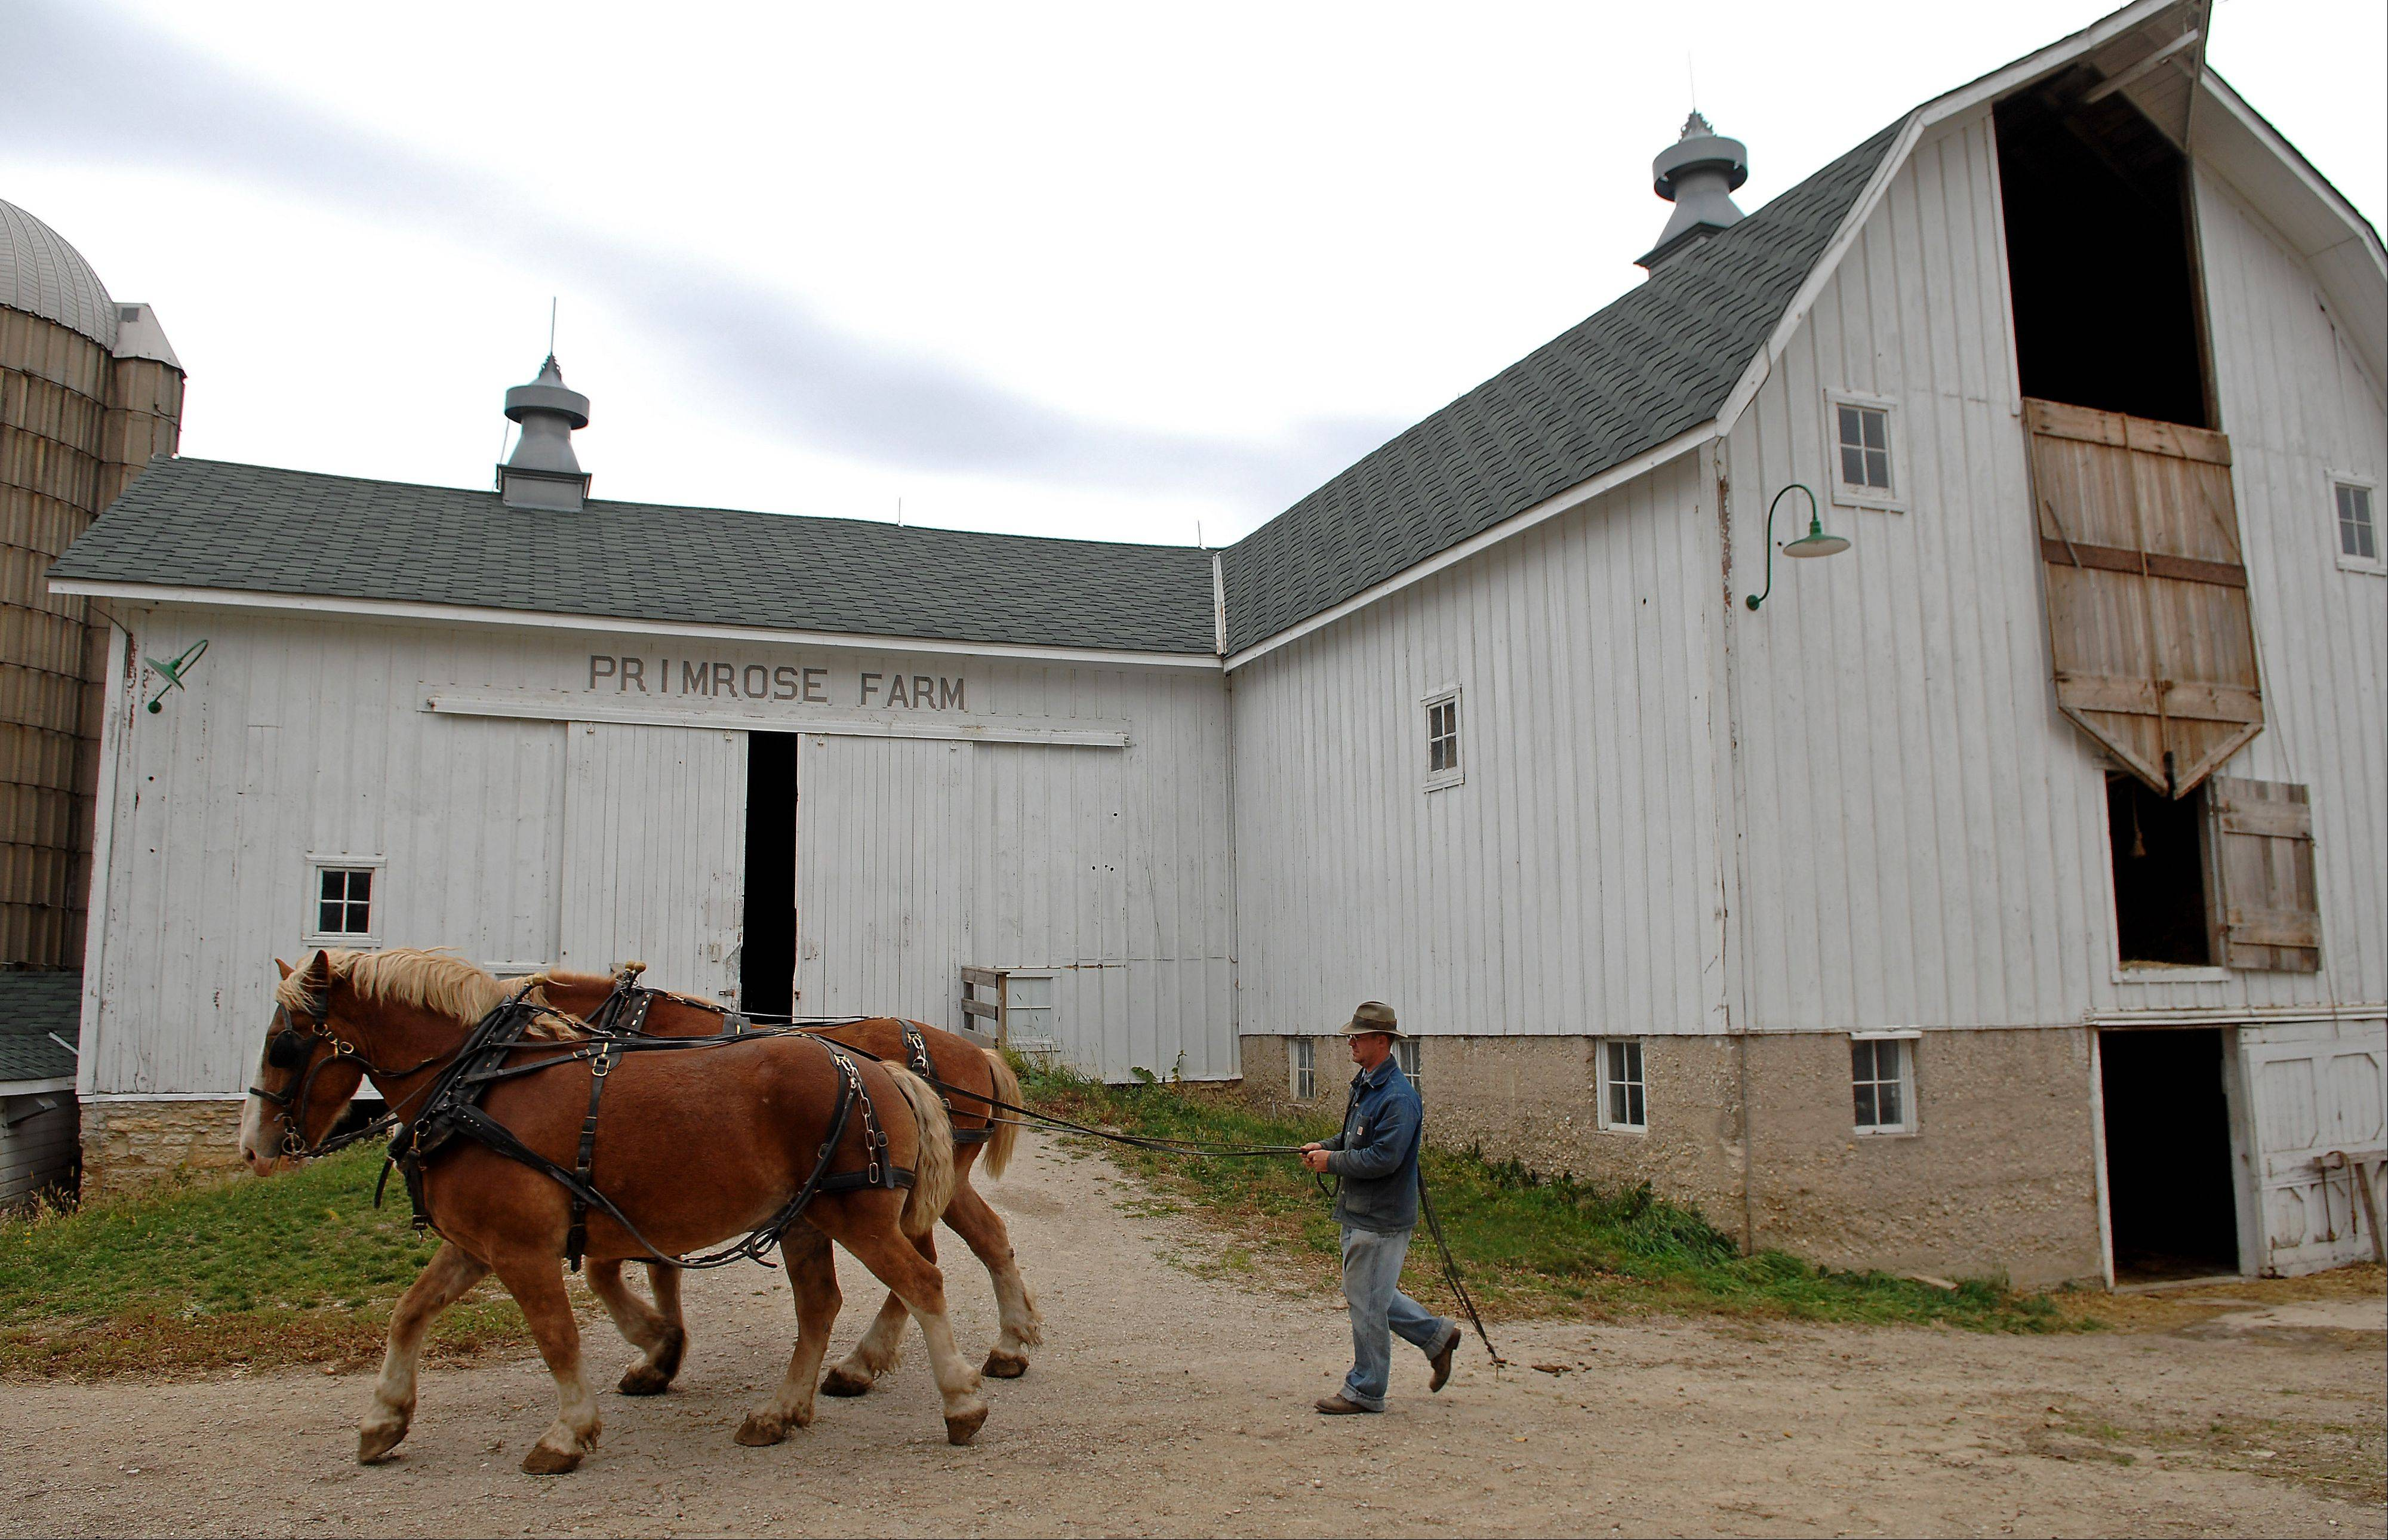 Living history farmer Jon Kuester takes the horses out to work in the field at Primrose Farm in St. Charles.